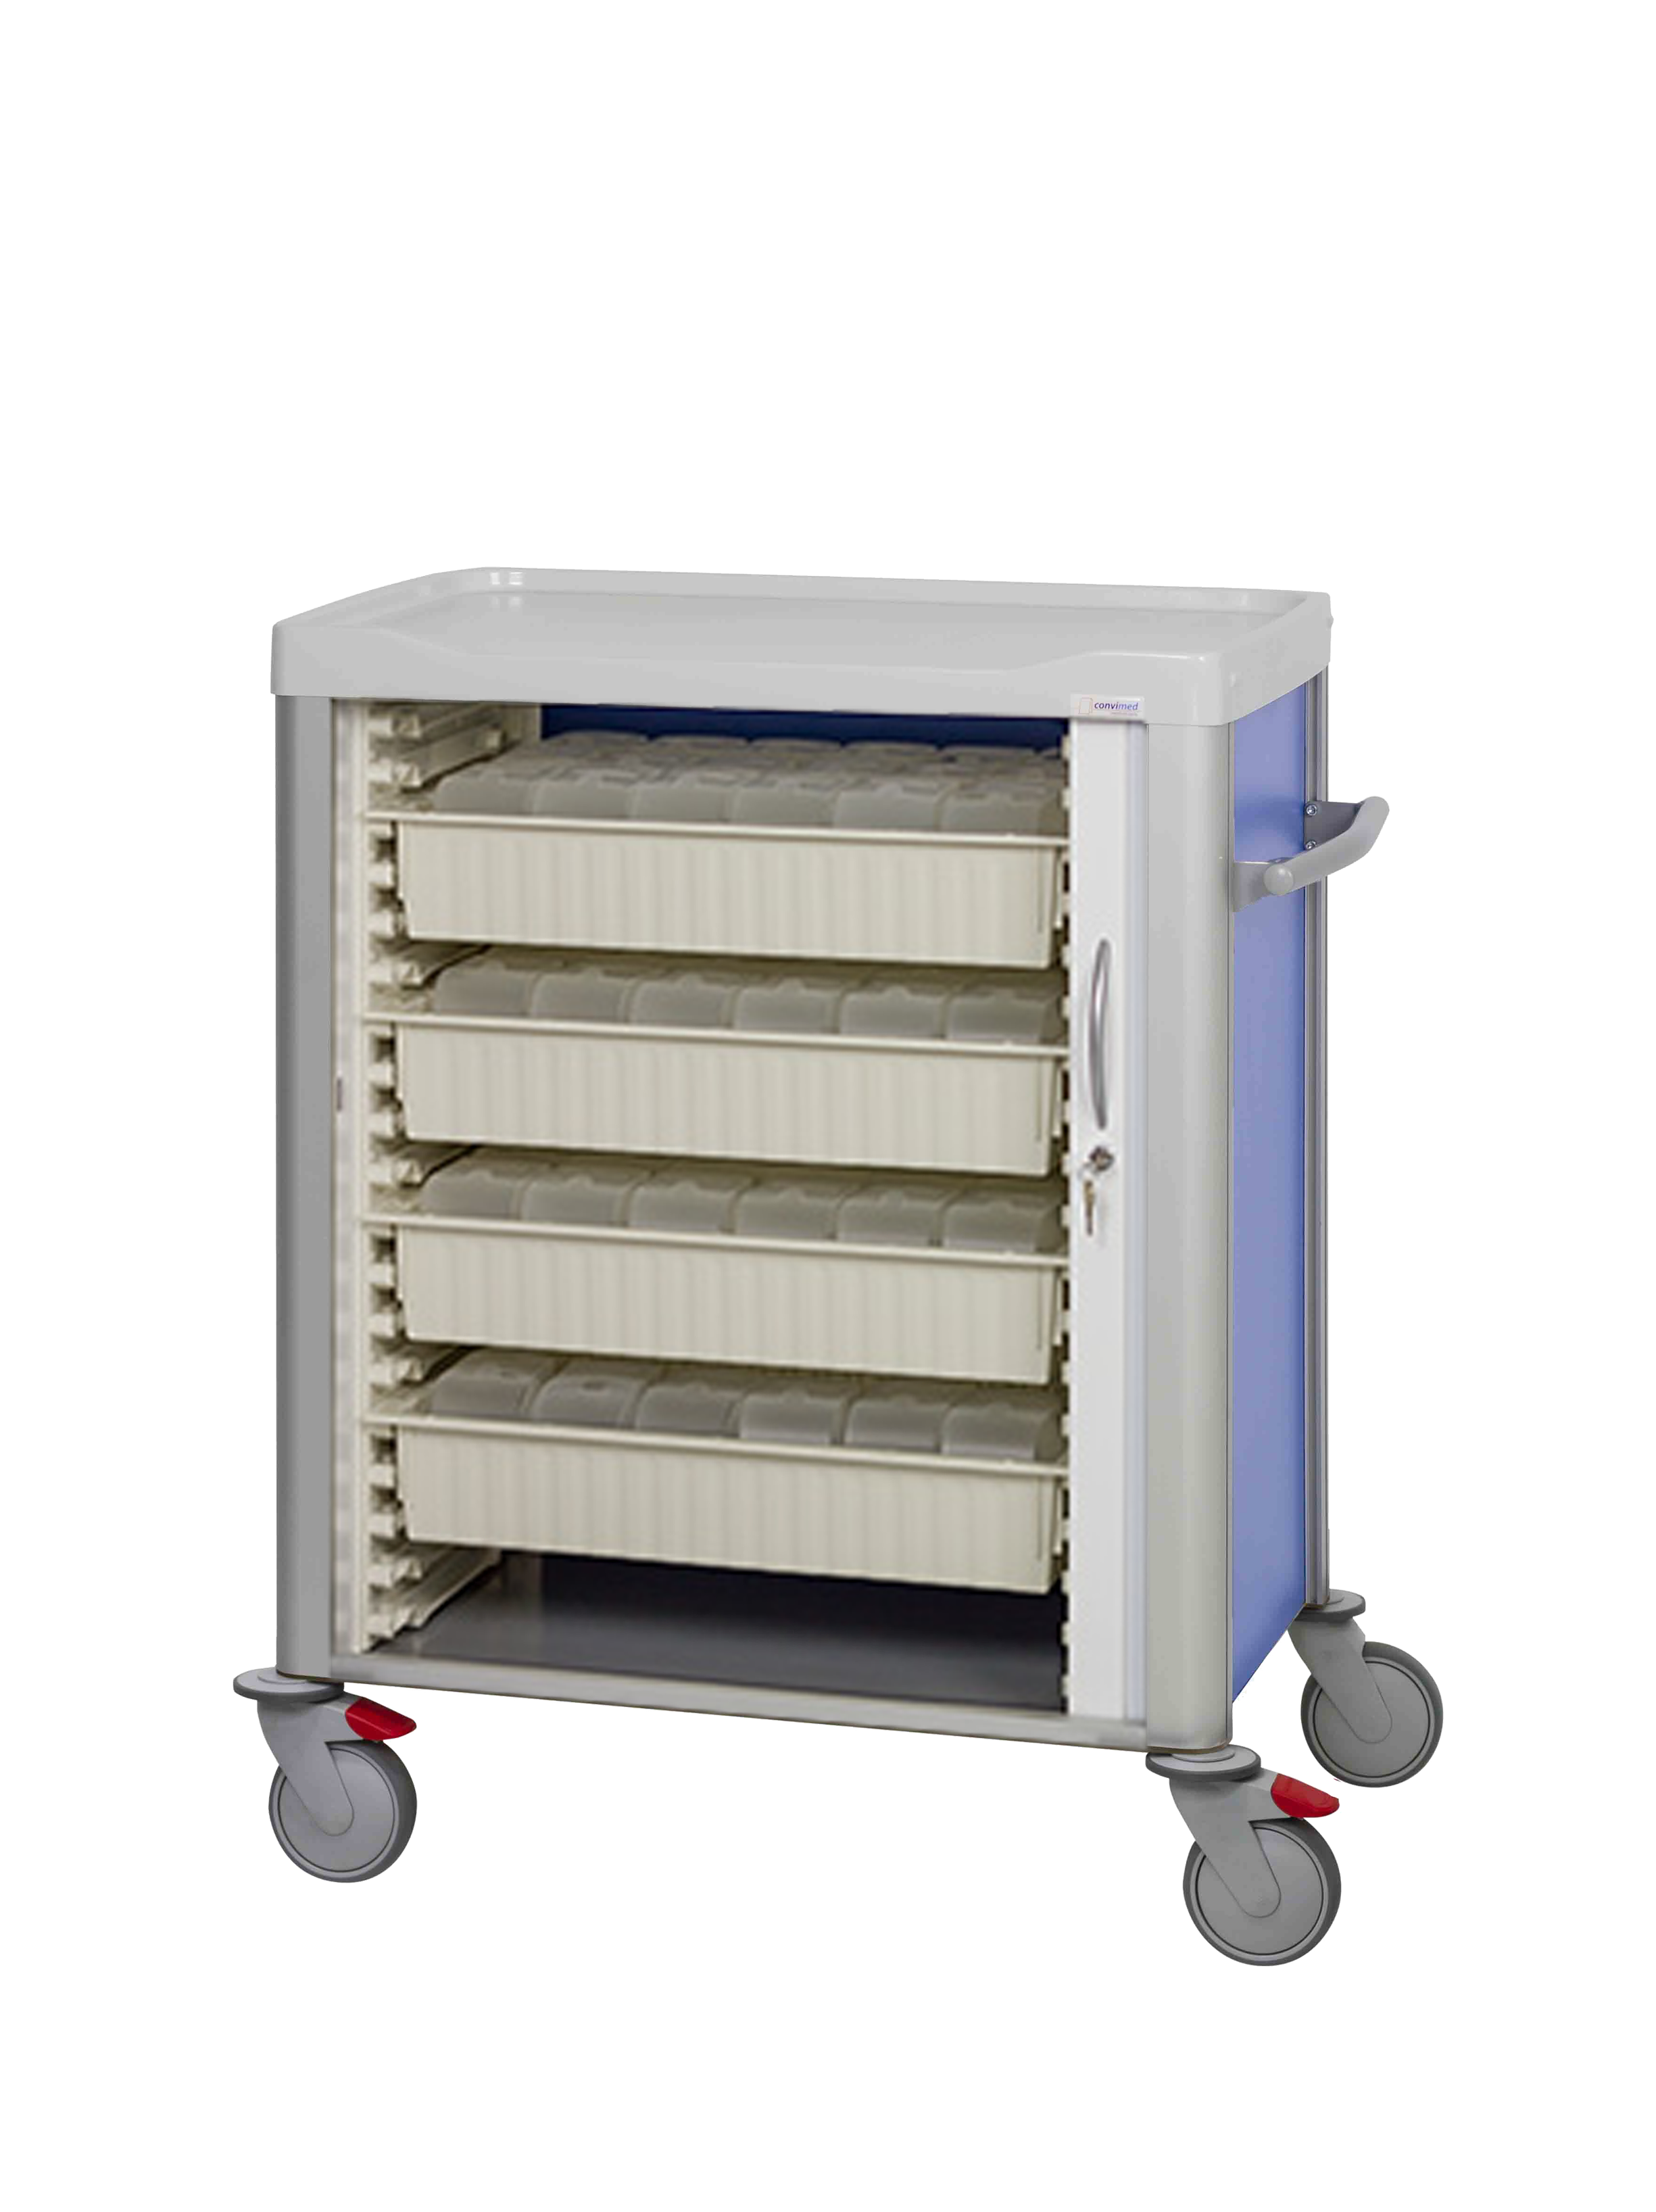 Trolley with open shutter and door lock, with 4 cream colored trays with transparent robot boxes inside